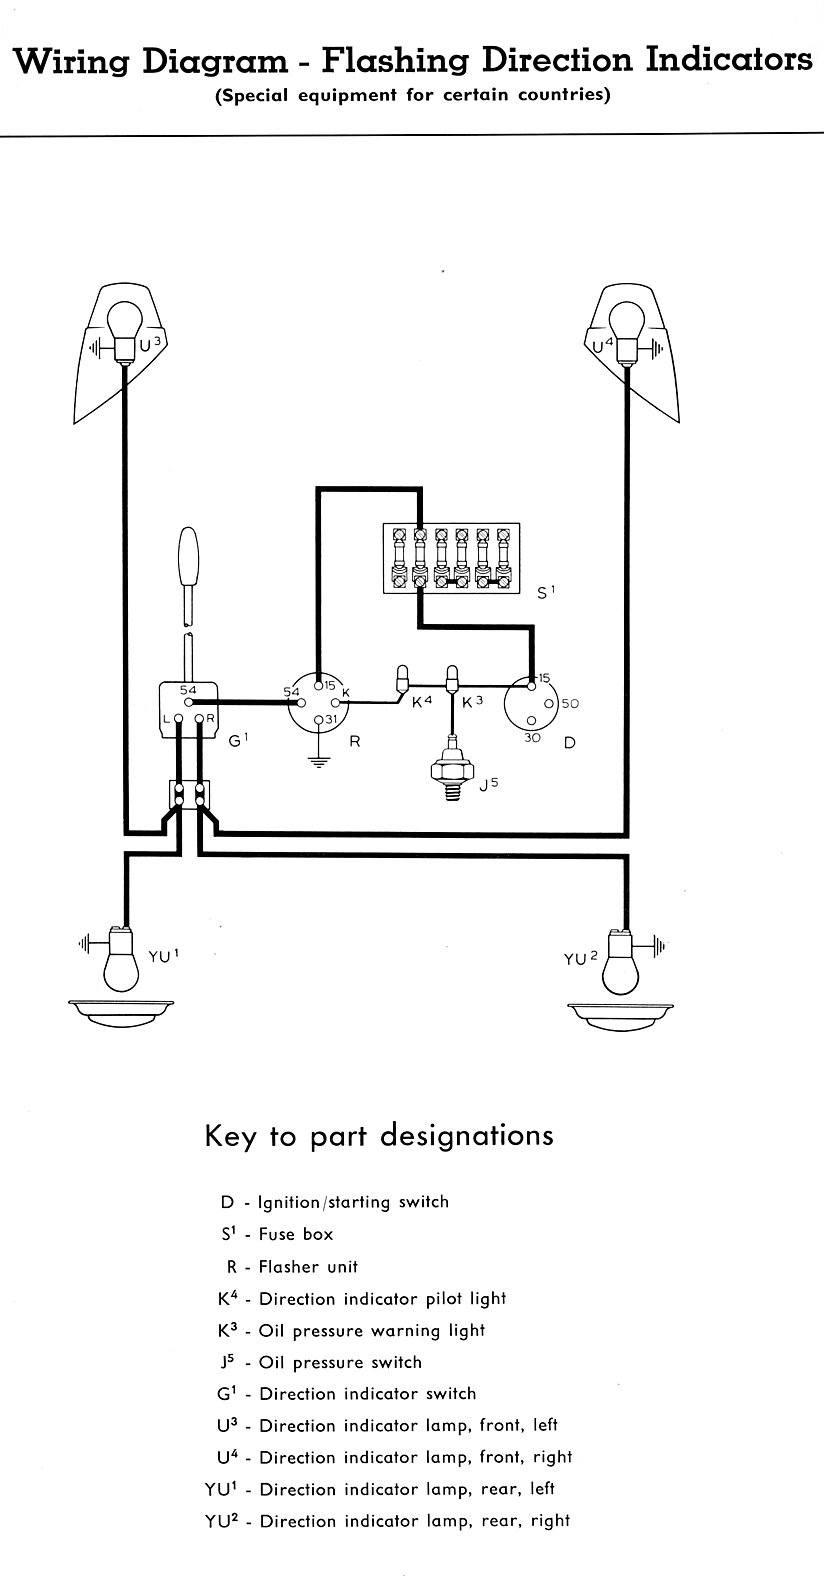 1970 Vw Beetle Turn Signal Wiring Diagram - Complete Wiring Diagrams  Volkswagen Wiring Schematic on engine schematics, plumbing schematics, transmission schematics, transformer schematics, amplifier schematics, wire schematics, ford diagrams schematics, circuit schematics, electronics schematics, ignition schematics, generator schematics, piping schematics, ecu schematics, ductwork schematics, motor schematics, computer schematics, electrical schematics, tube amp schematics, engineering schematics, design schematics,